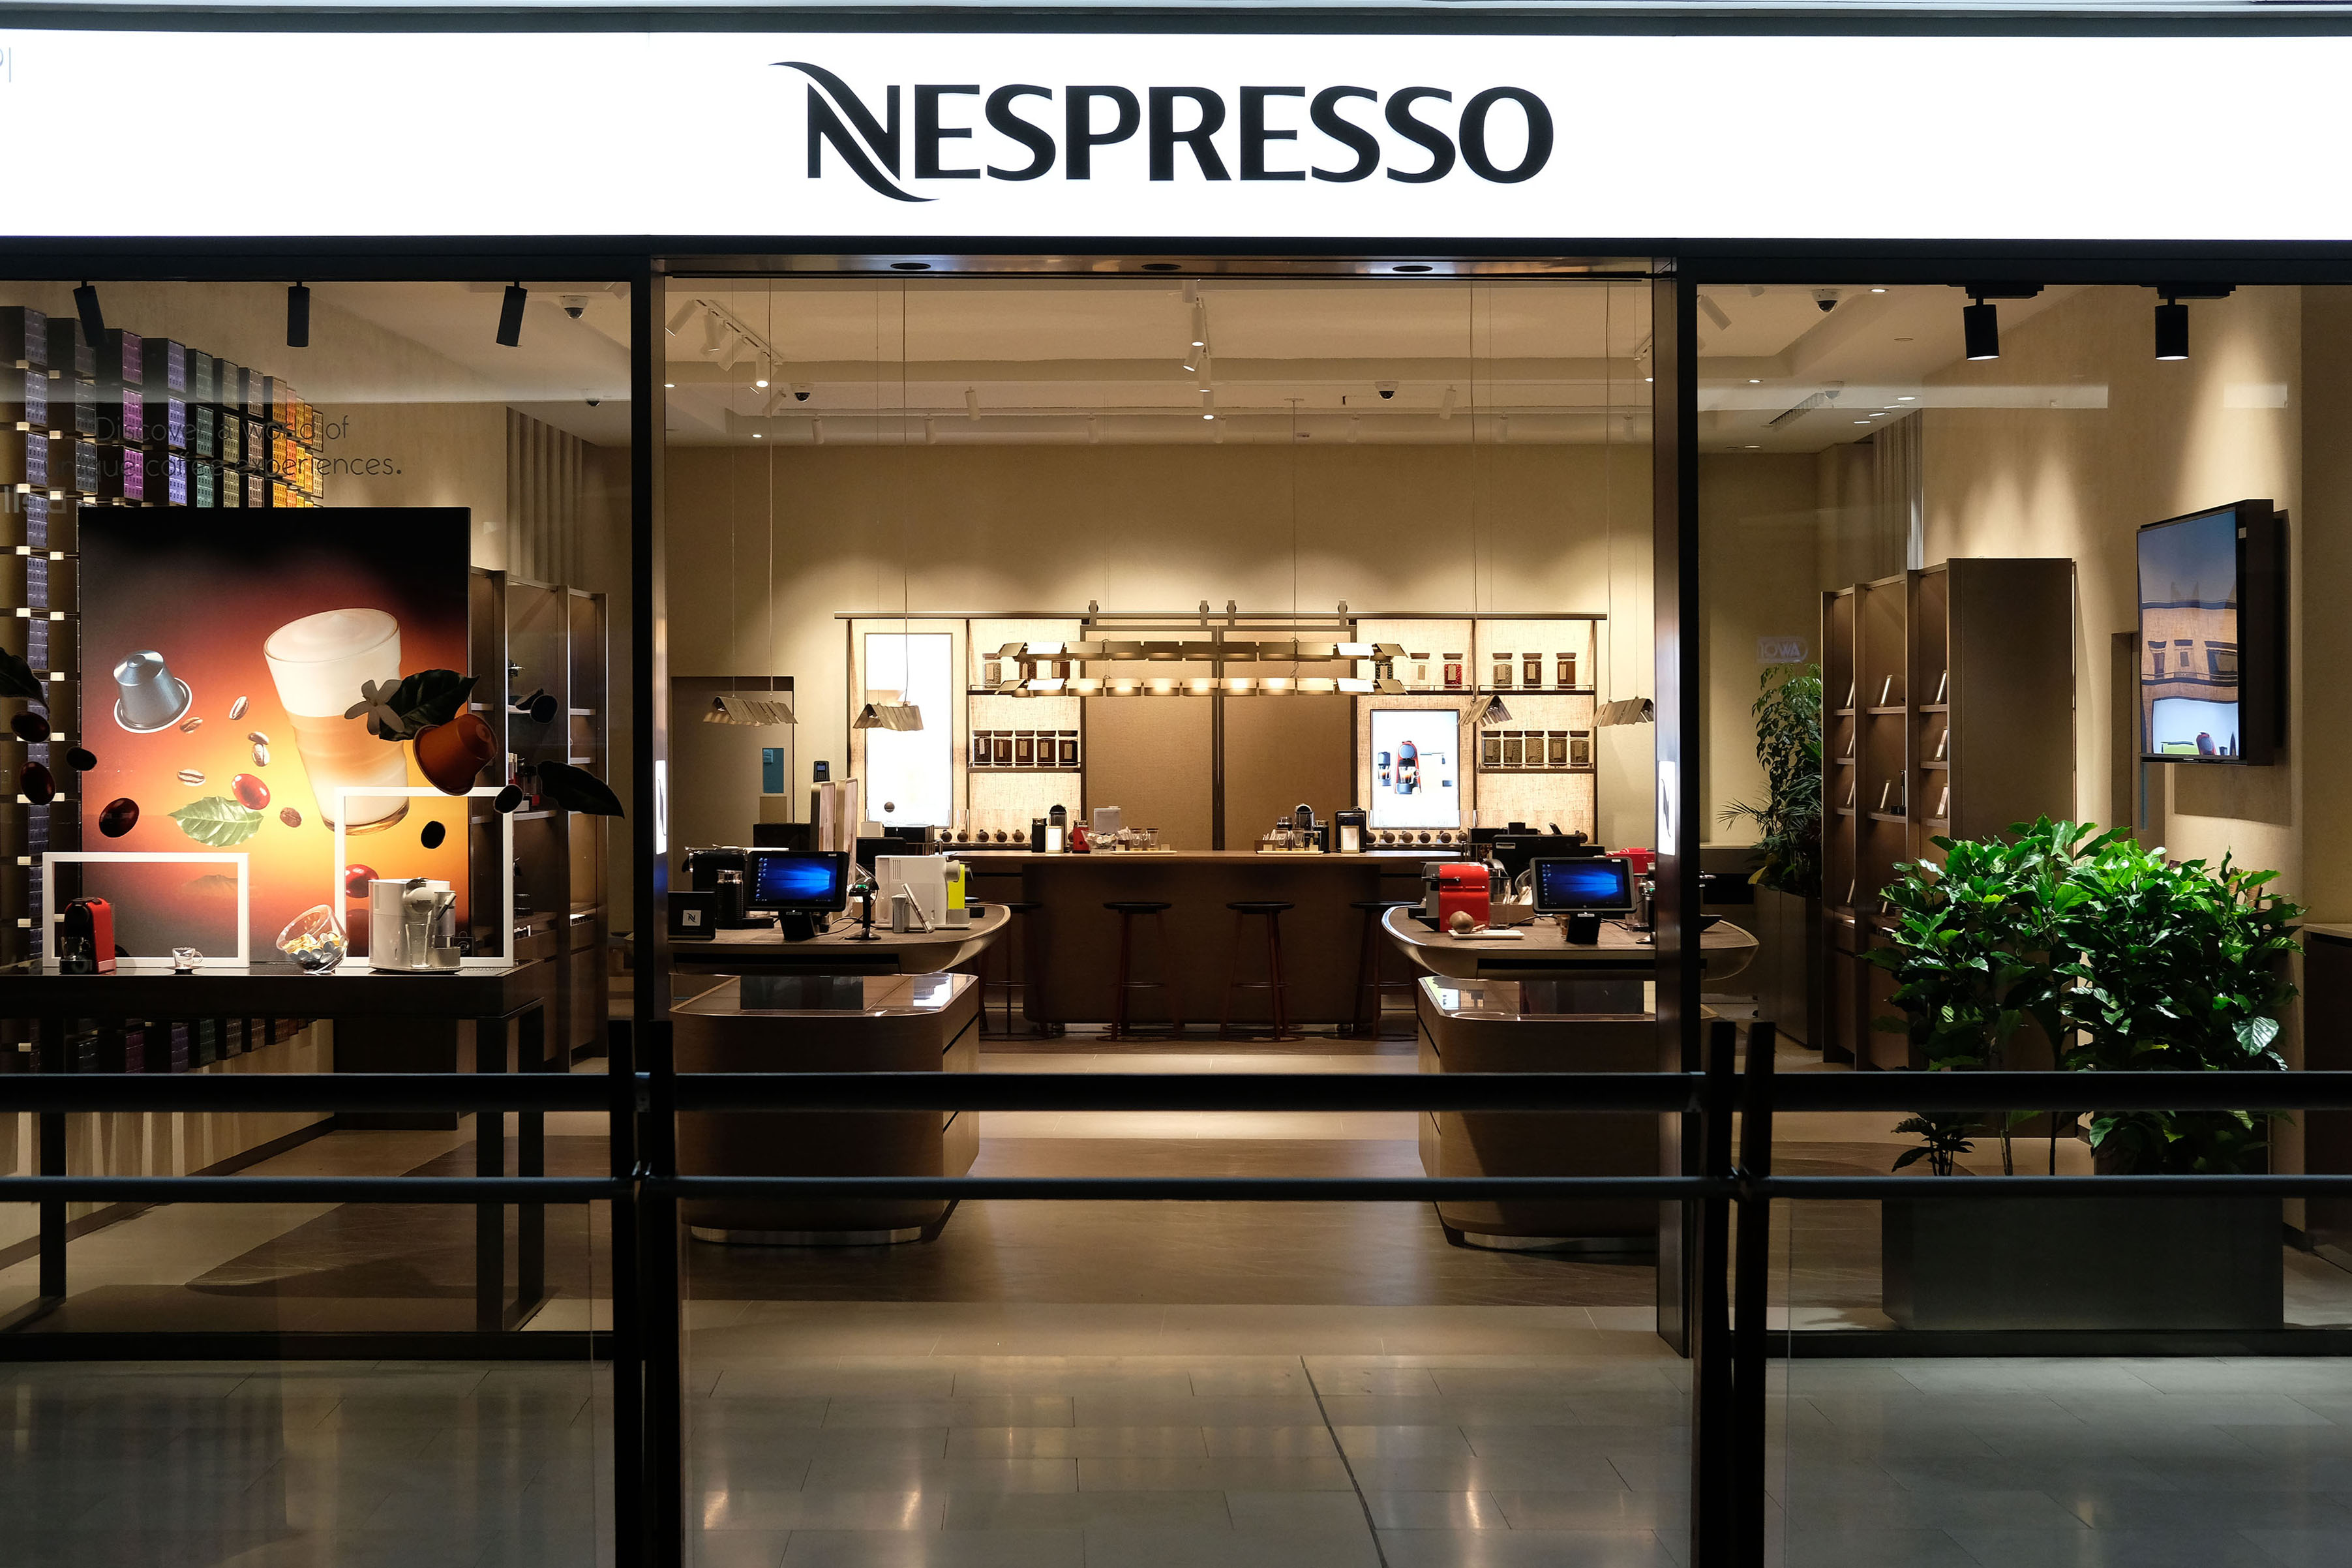 Image from Nespresso